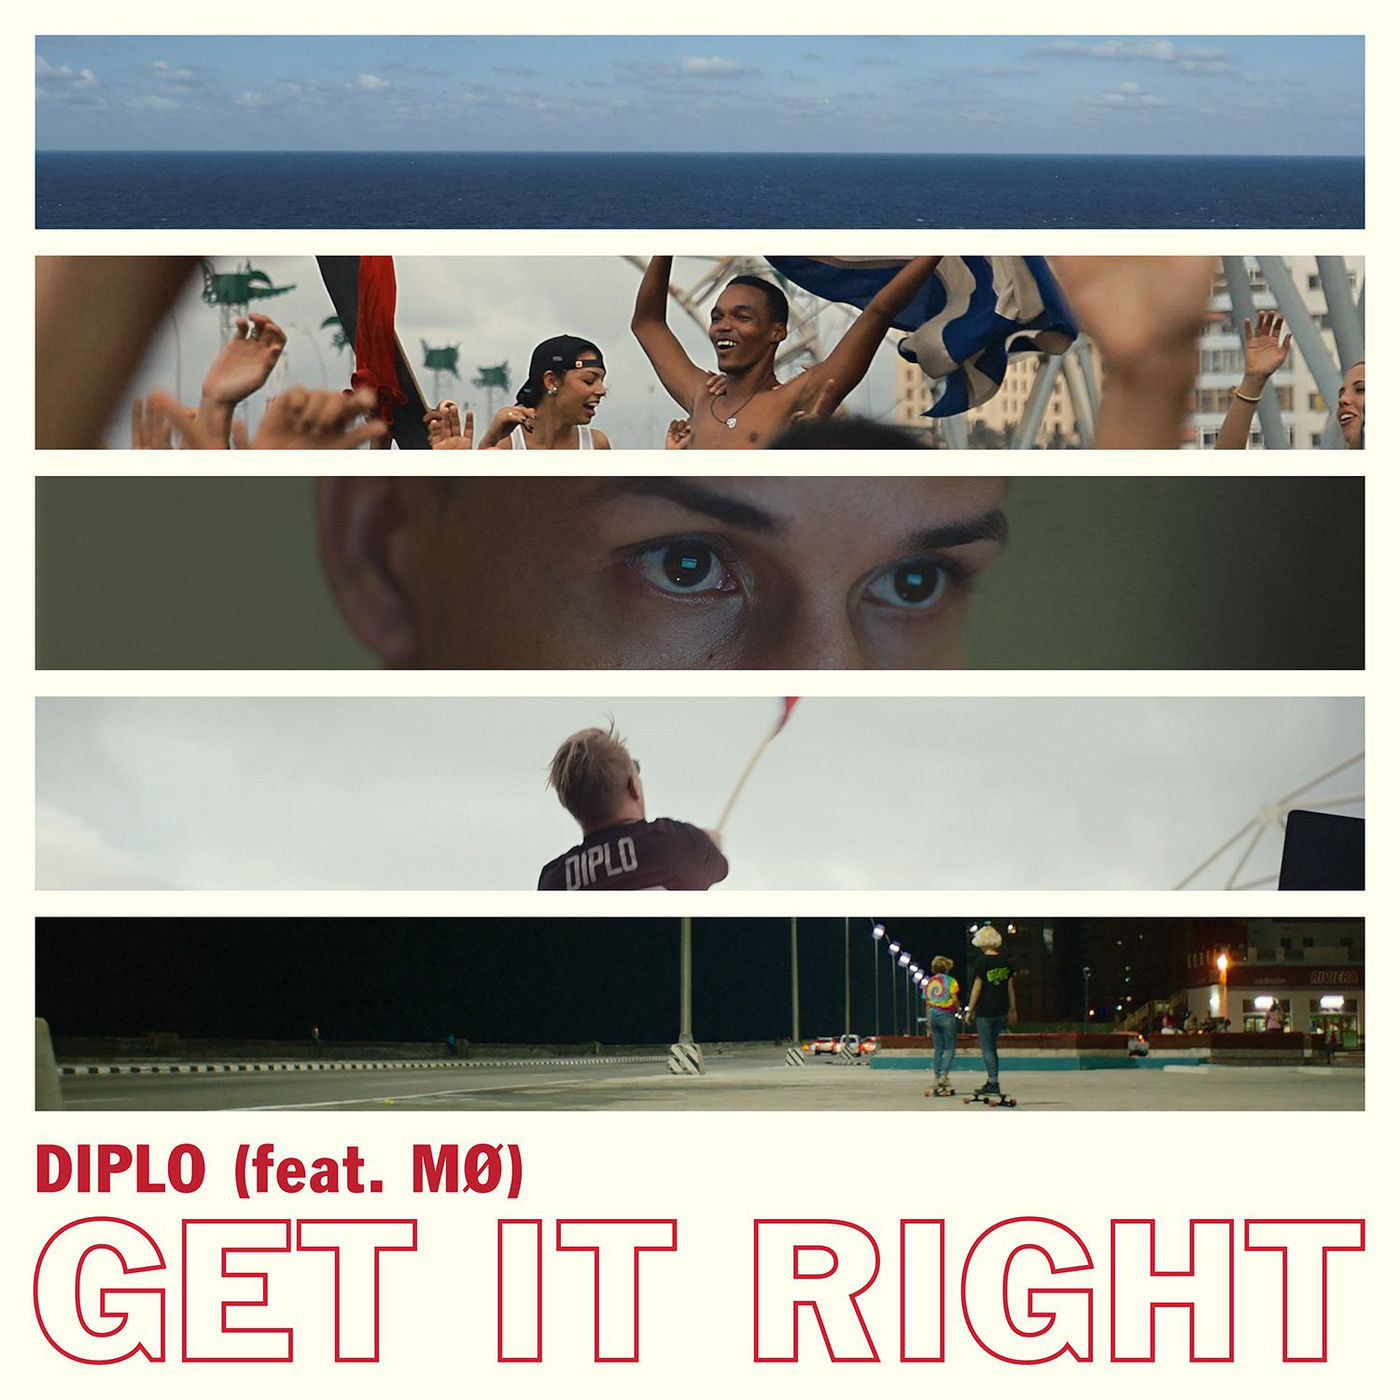 Diplo - Get It Right (feat. MØ) - Single